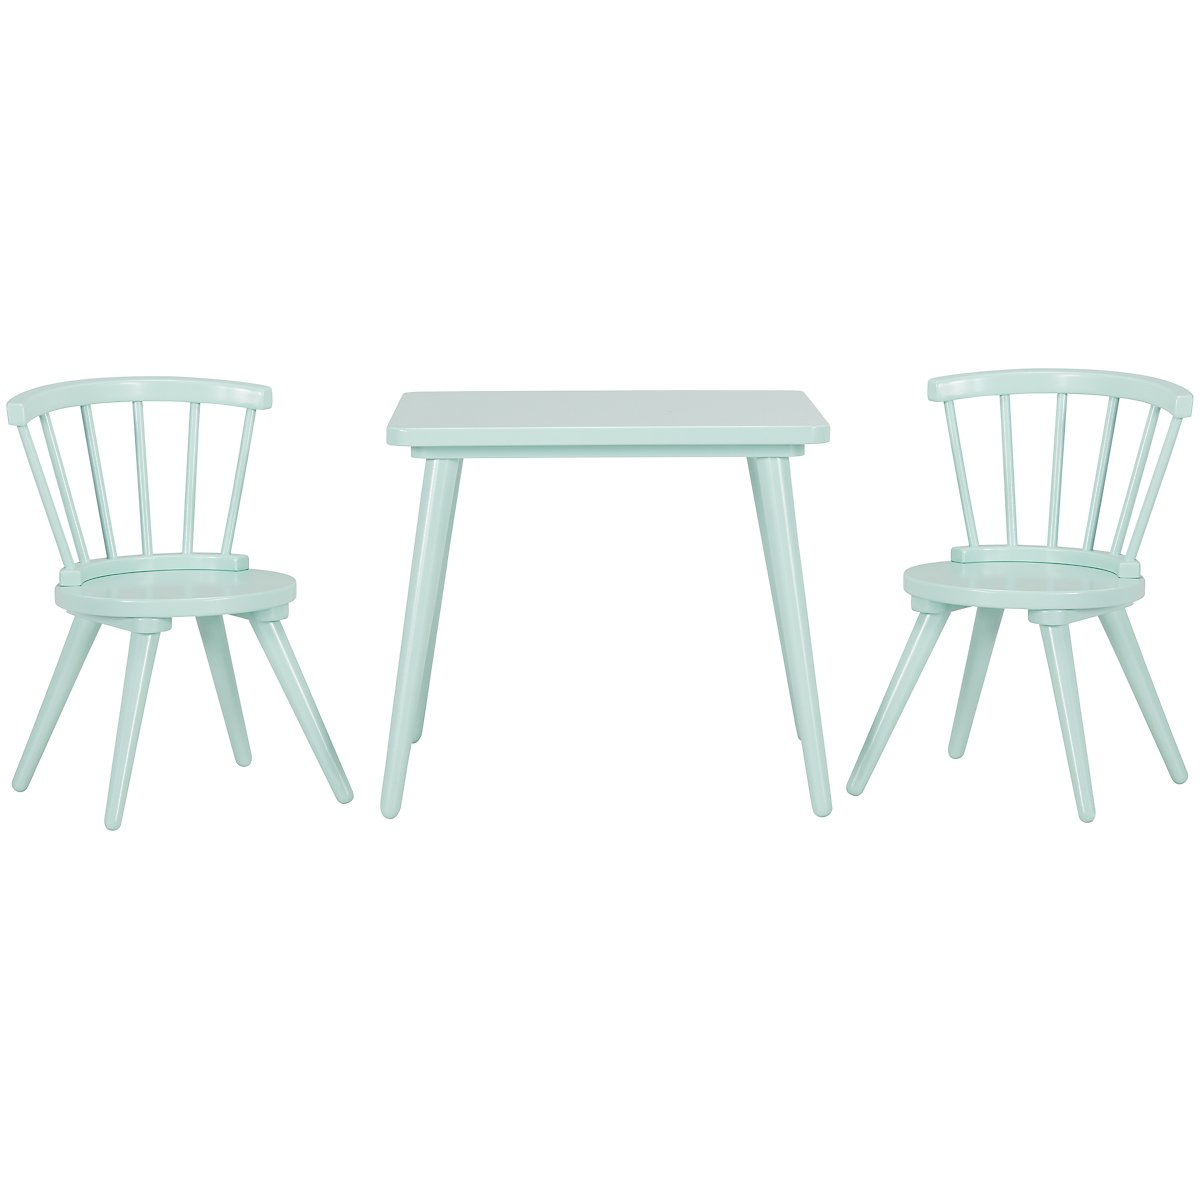 Windsor Light Blue Wood Table & 2 Chairs